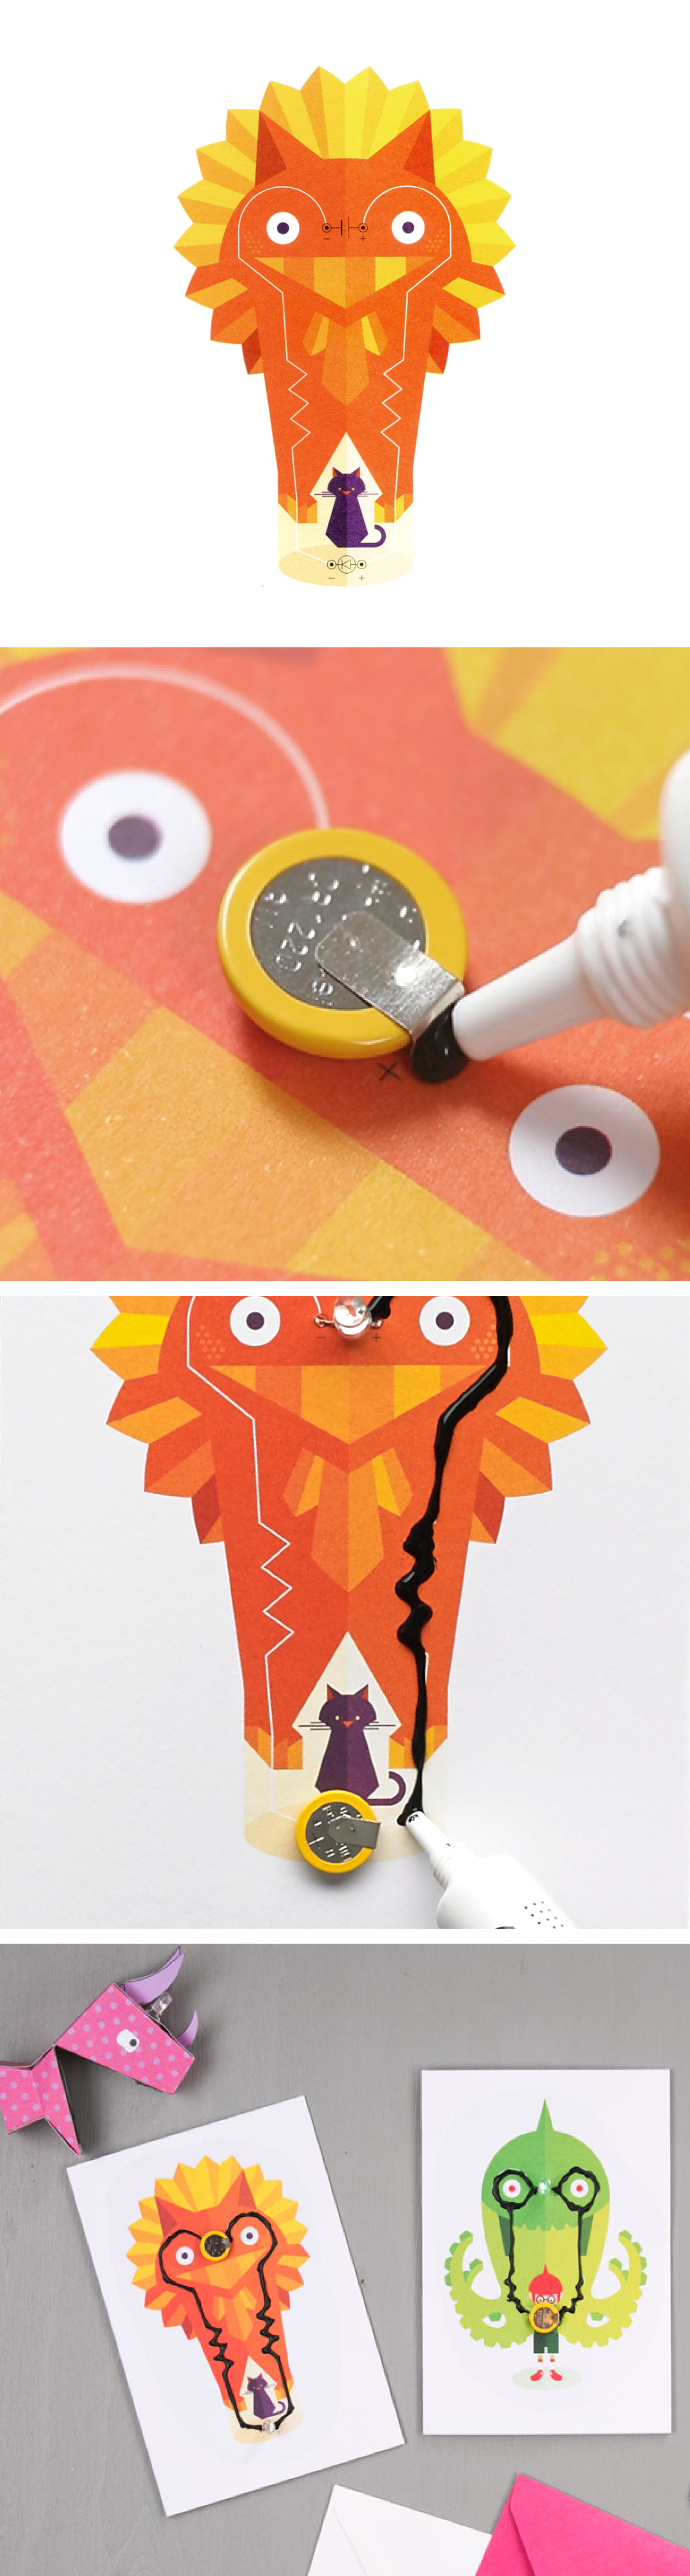 The perfect card for your beloved ones! Make your own interactive greeting #cards using Electric Paint!   Check the tips here and find them on our website: https://www.bareconductive.com/shop/flashing-card-set-celebration-circuit/